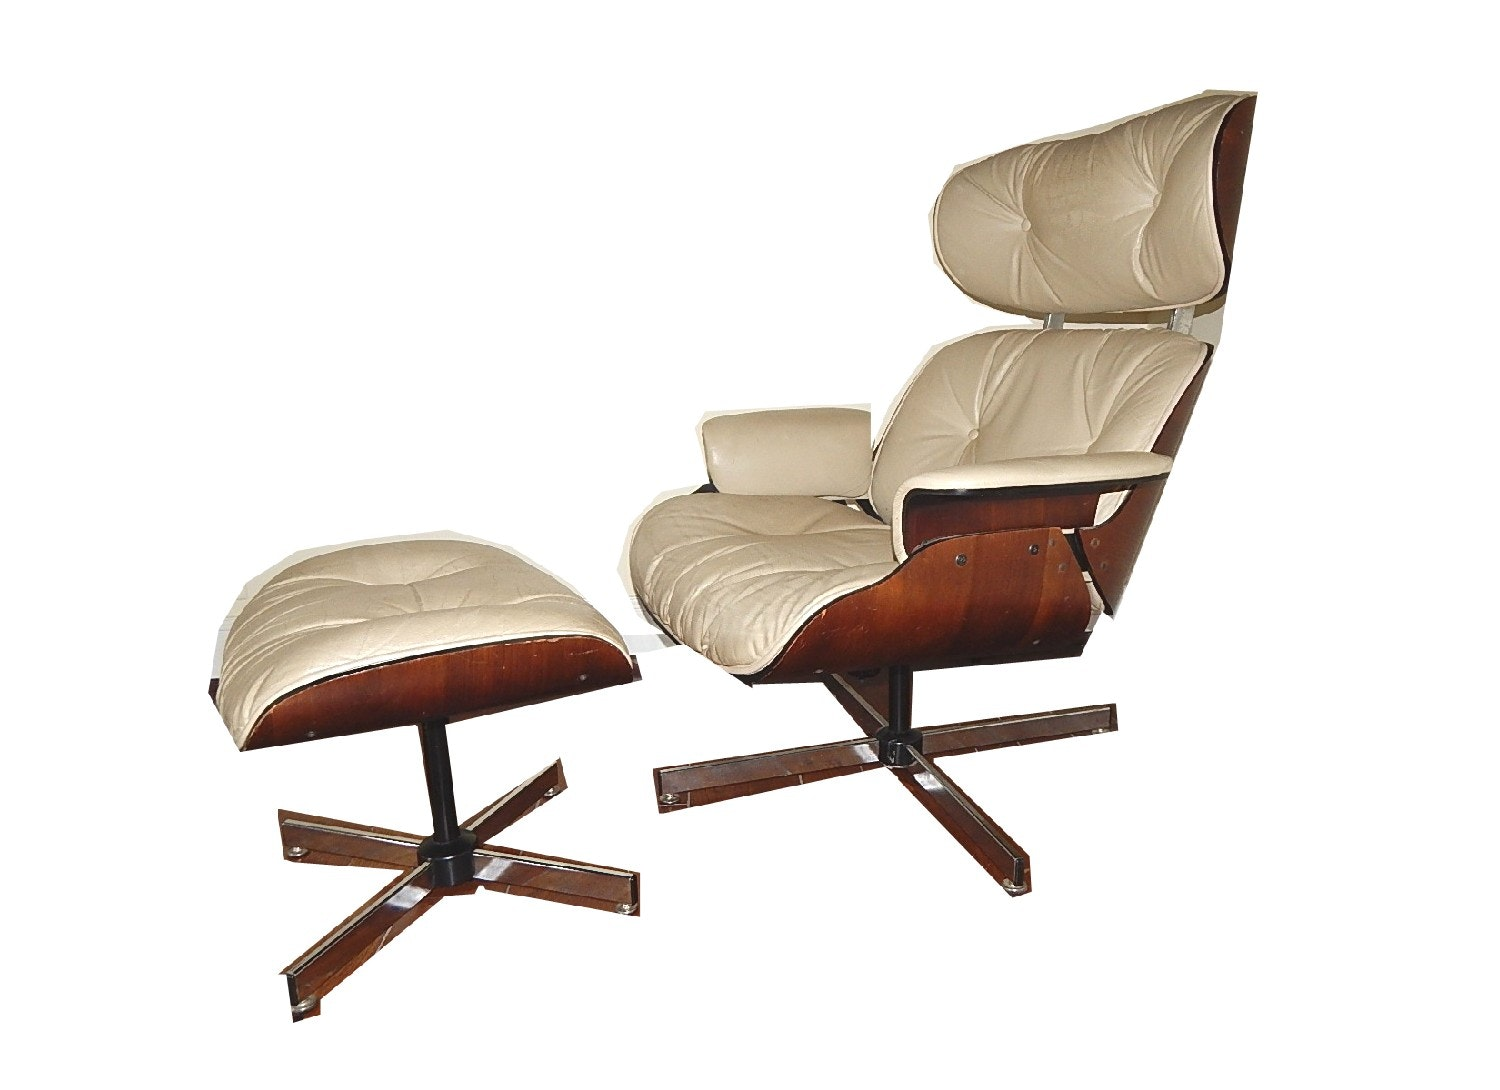 Eames Style Chair and Footstool